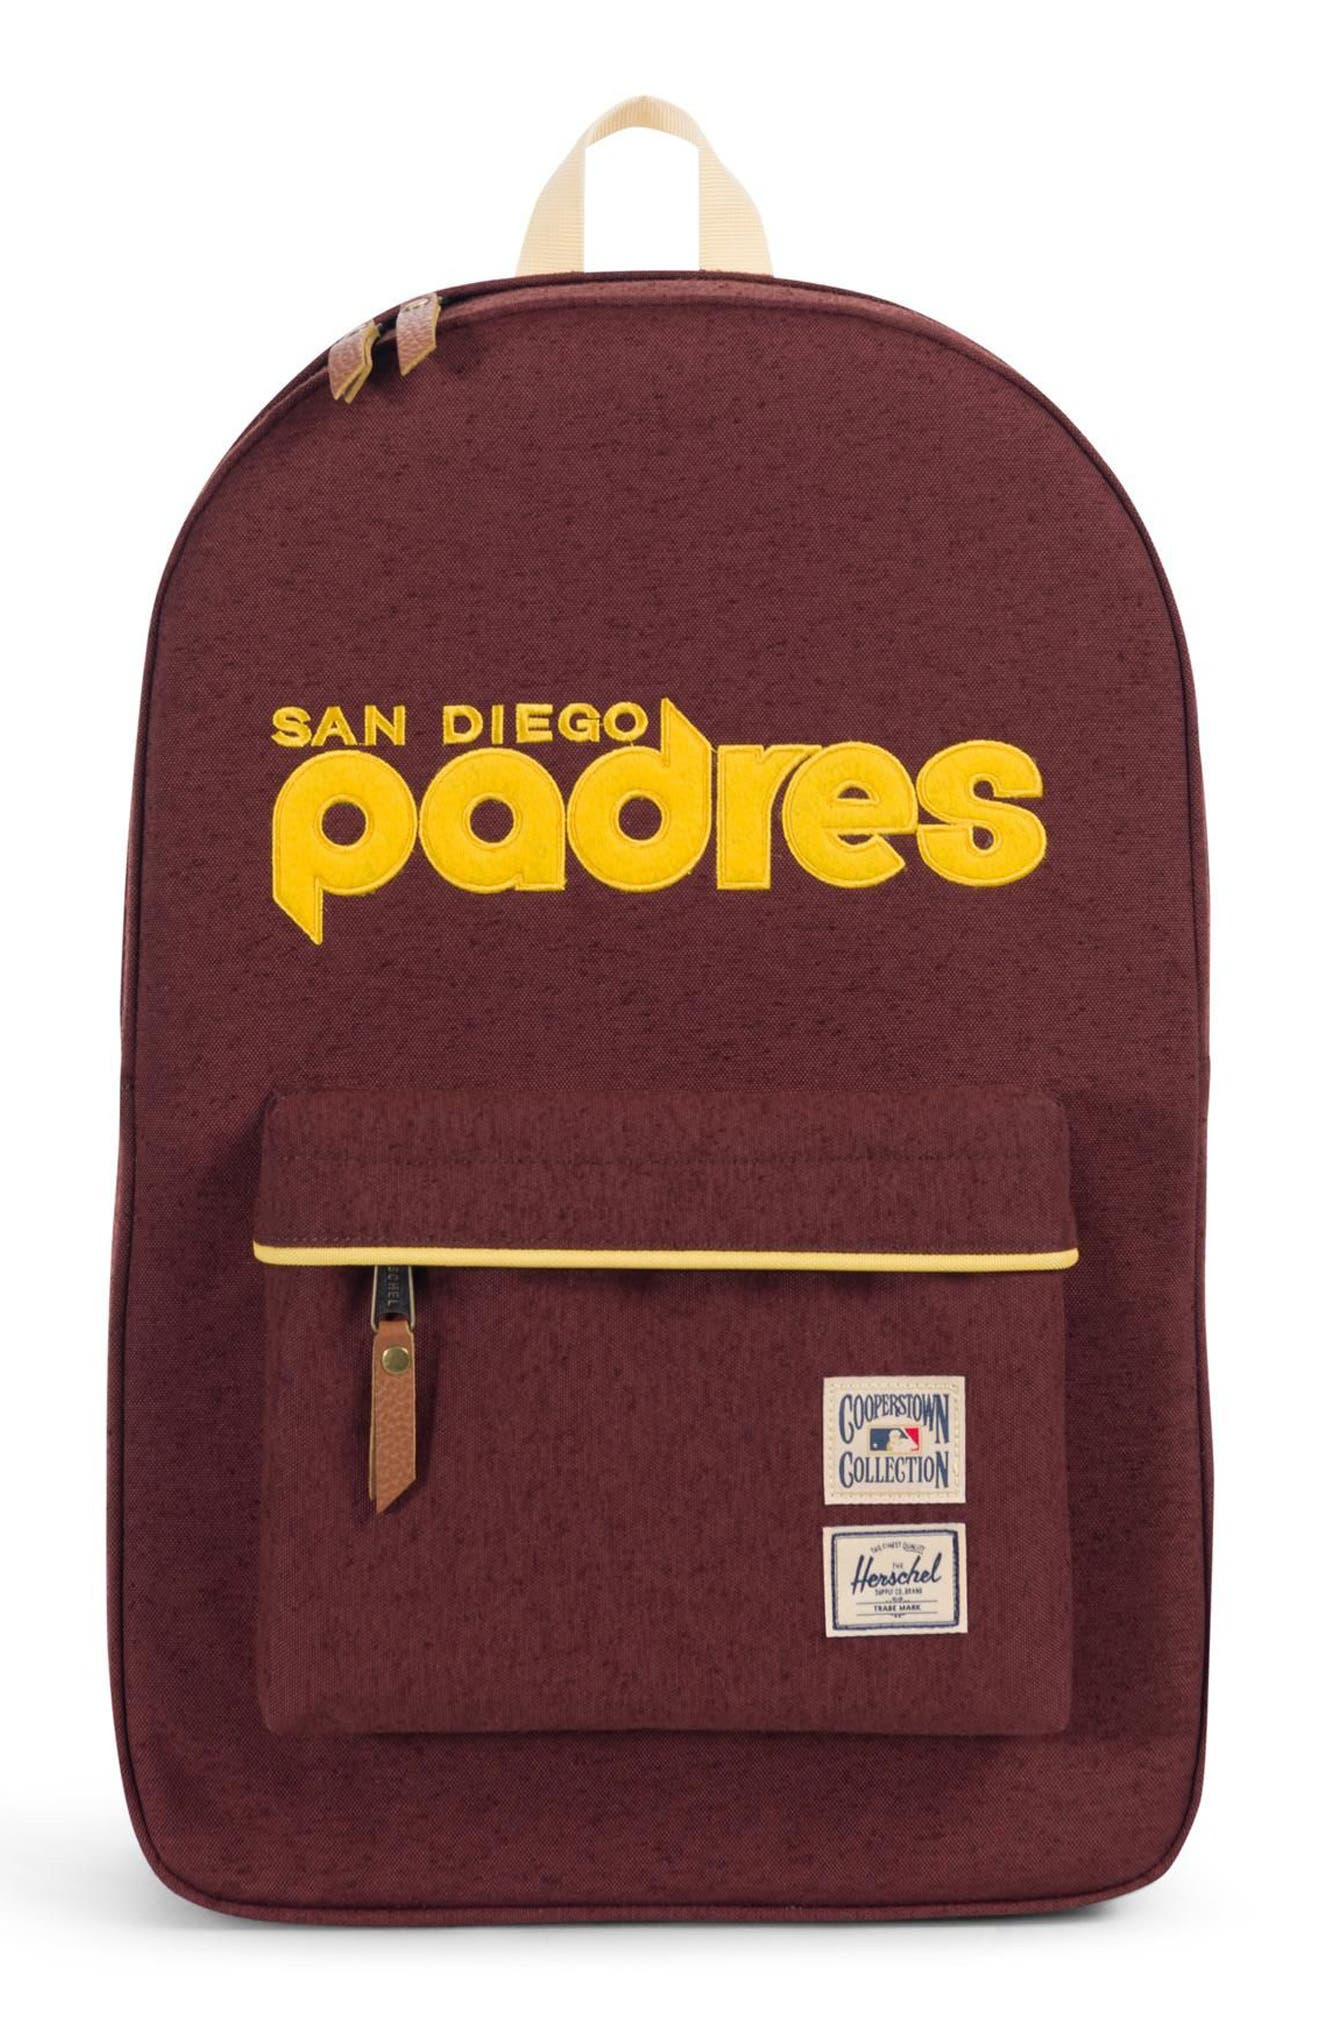 Heritage - MLB Cooperstown Collection Backpack,                             Main thumbnail 1, color,                             SAN DIEGO PADRES